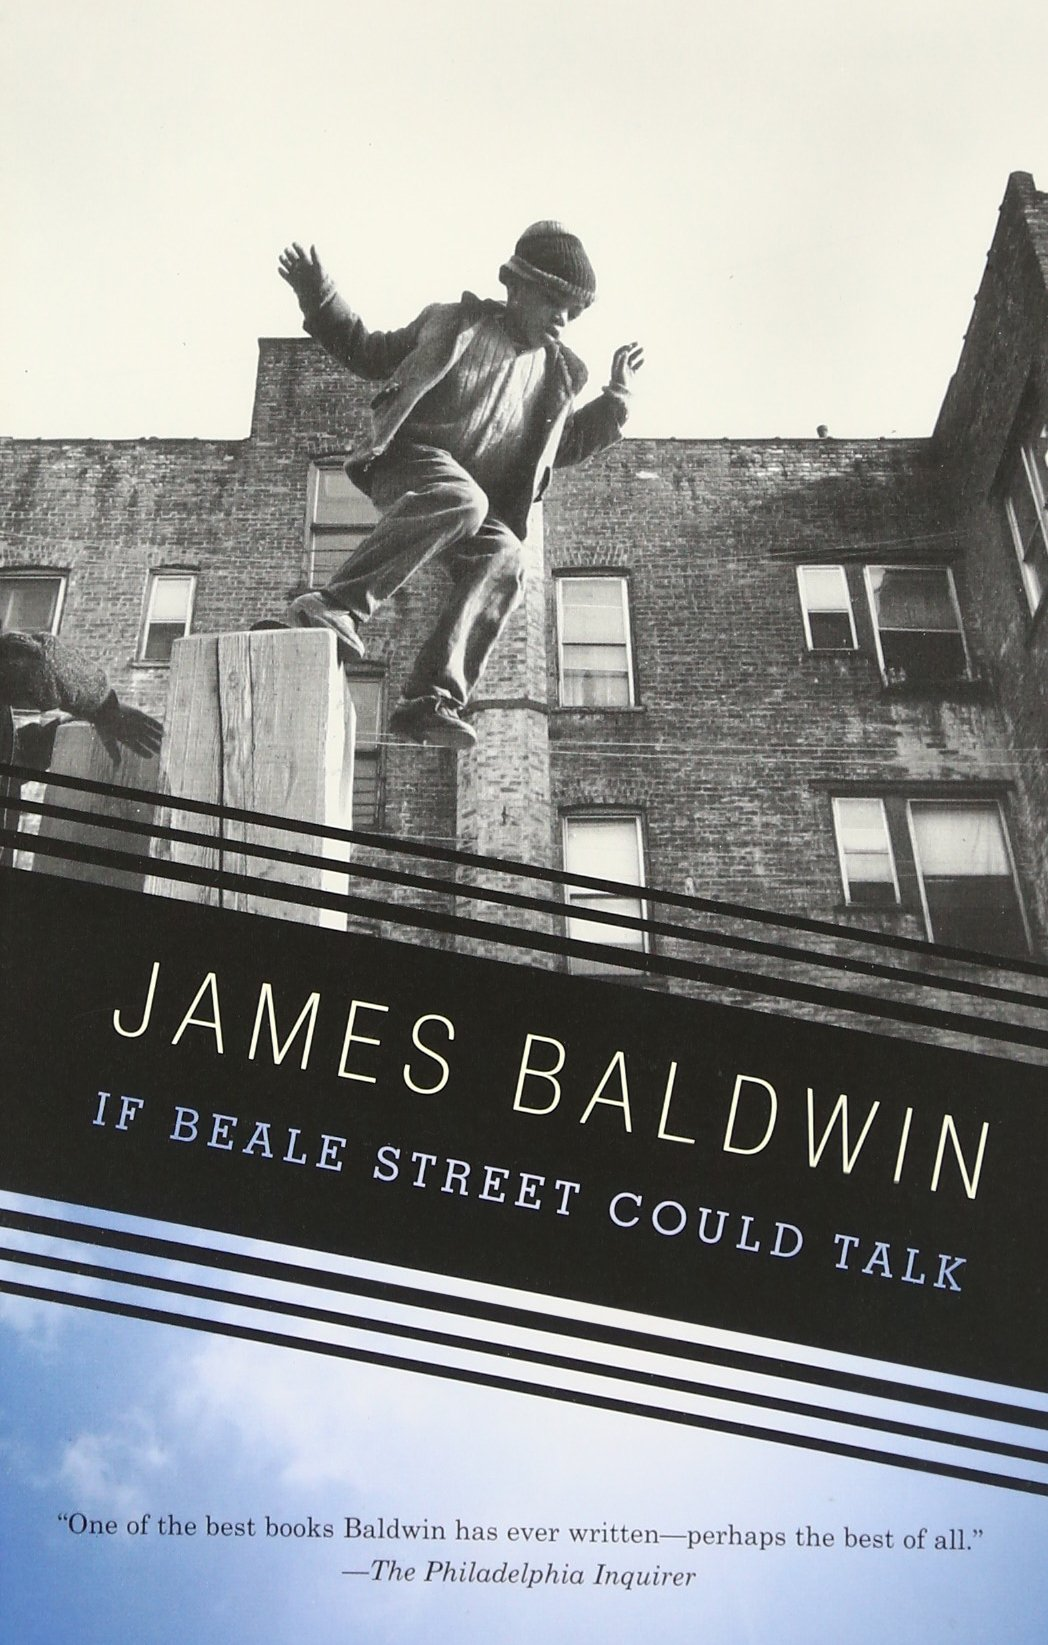 Amazon: If Beale Street Could Talk (9780307275936): James Baldwin: Books